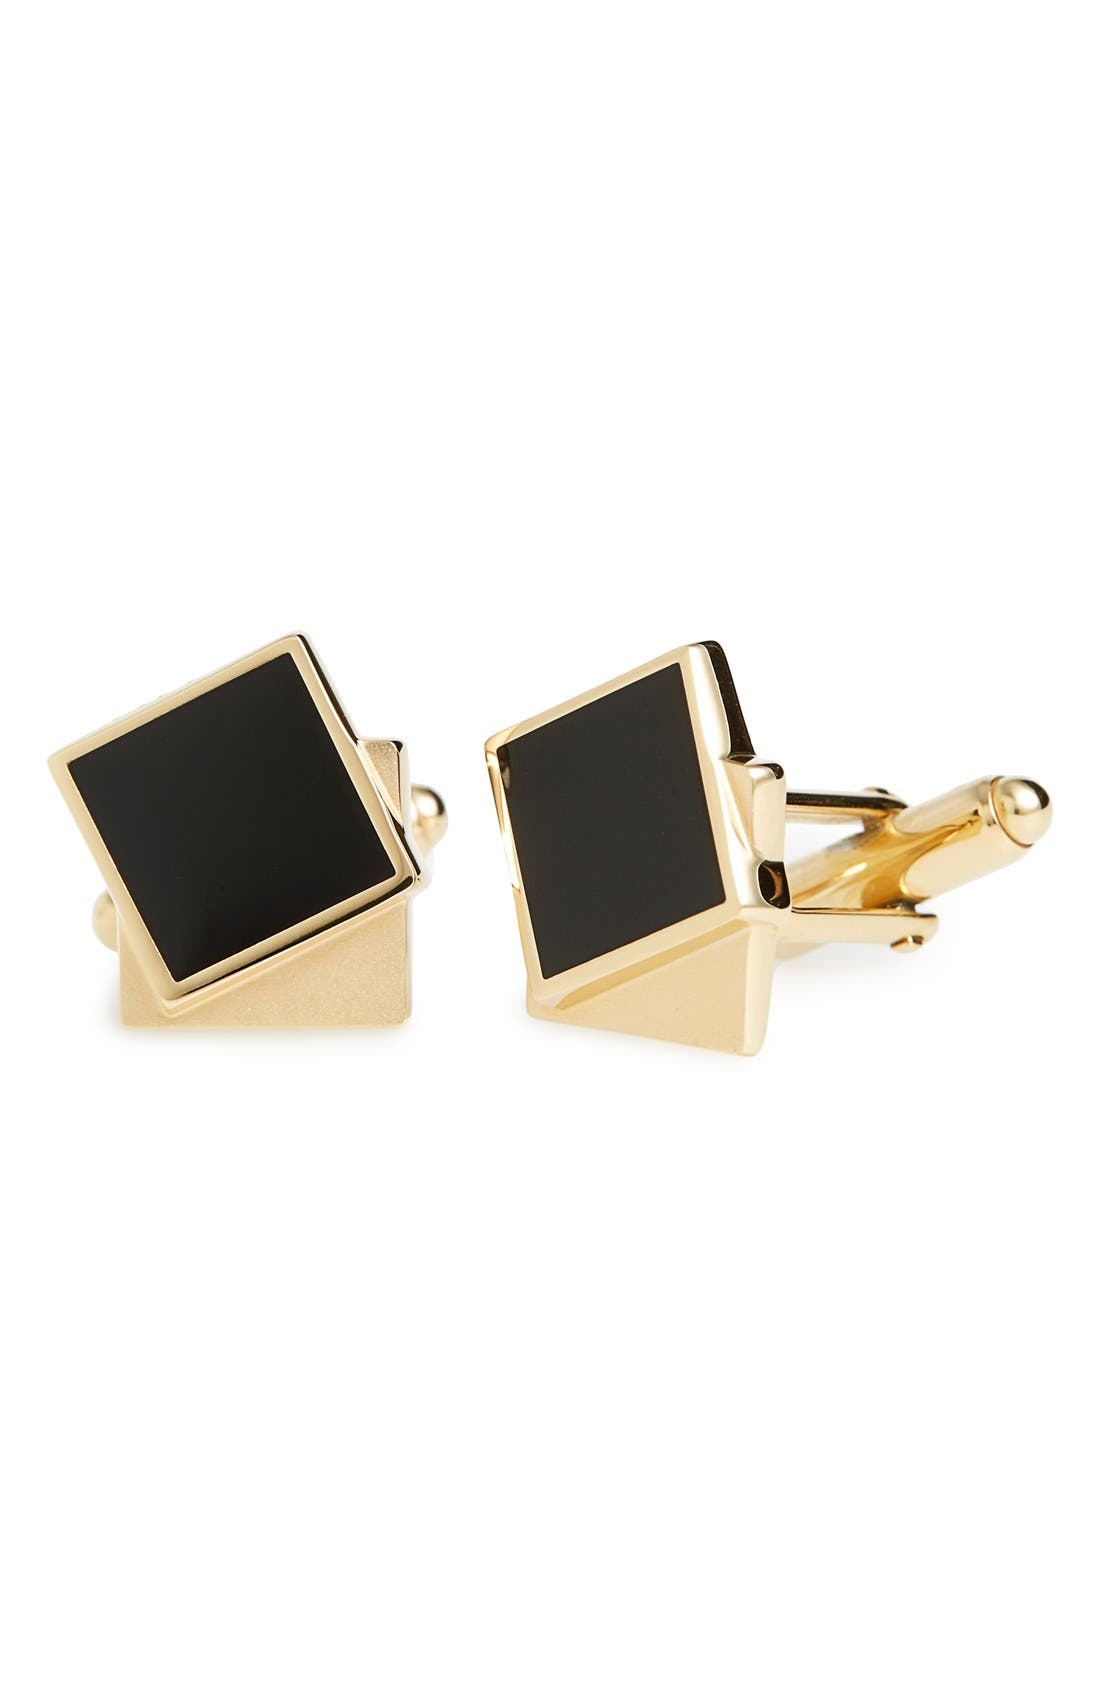 Main Image - Lanvin Enameled Double Square Cuff Links